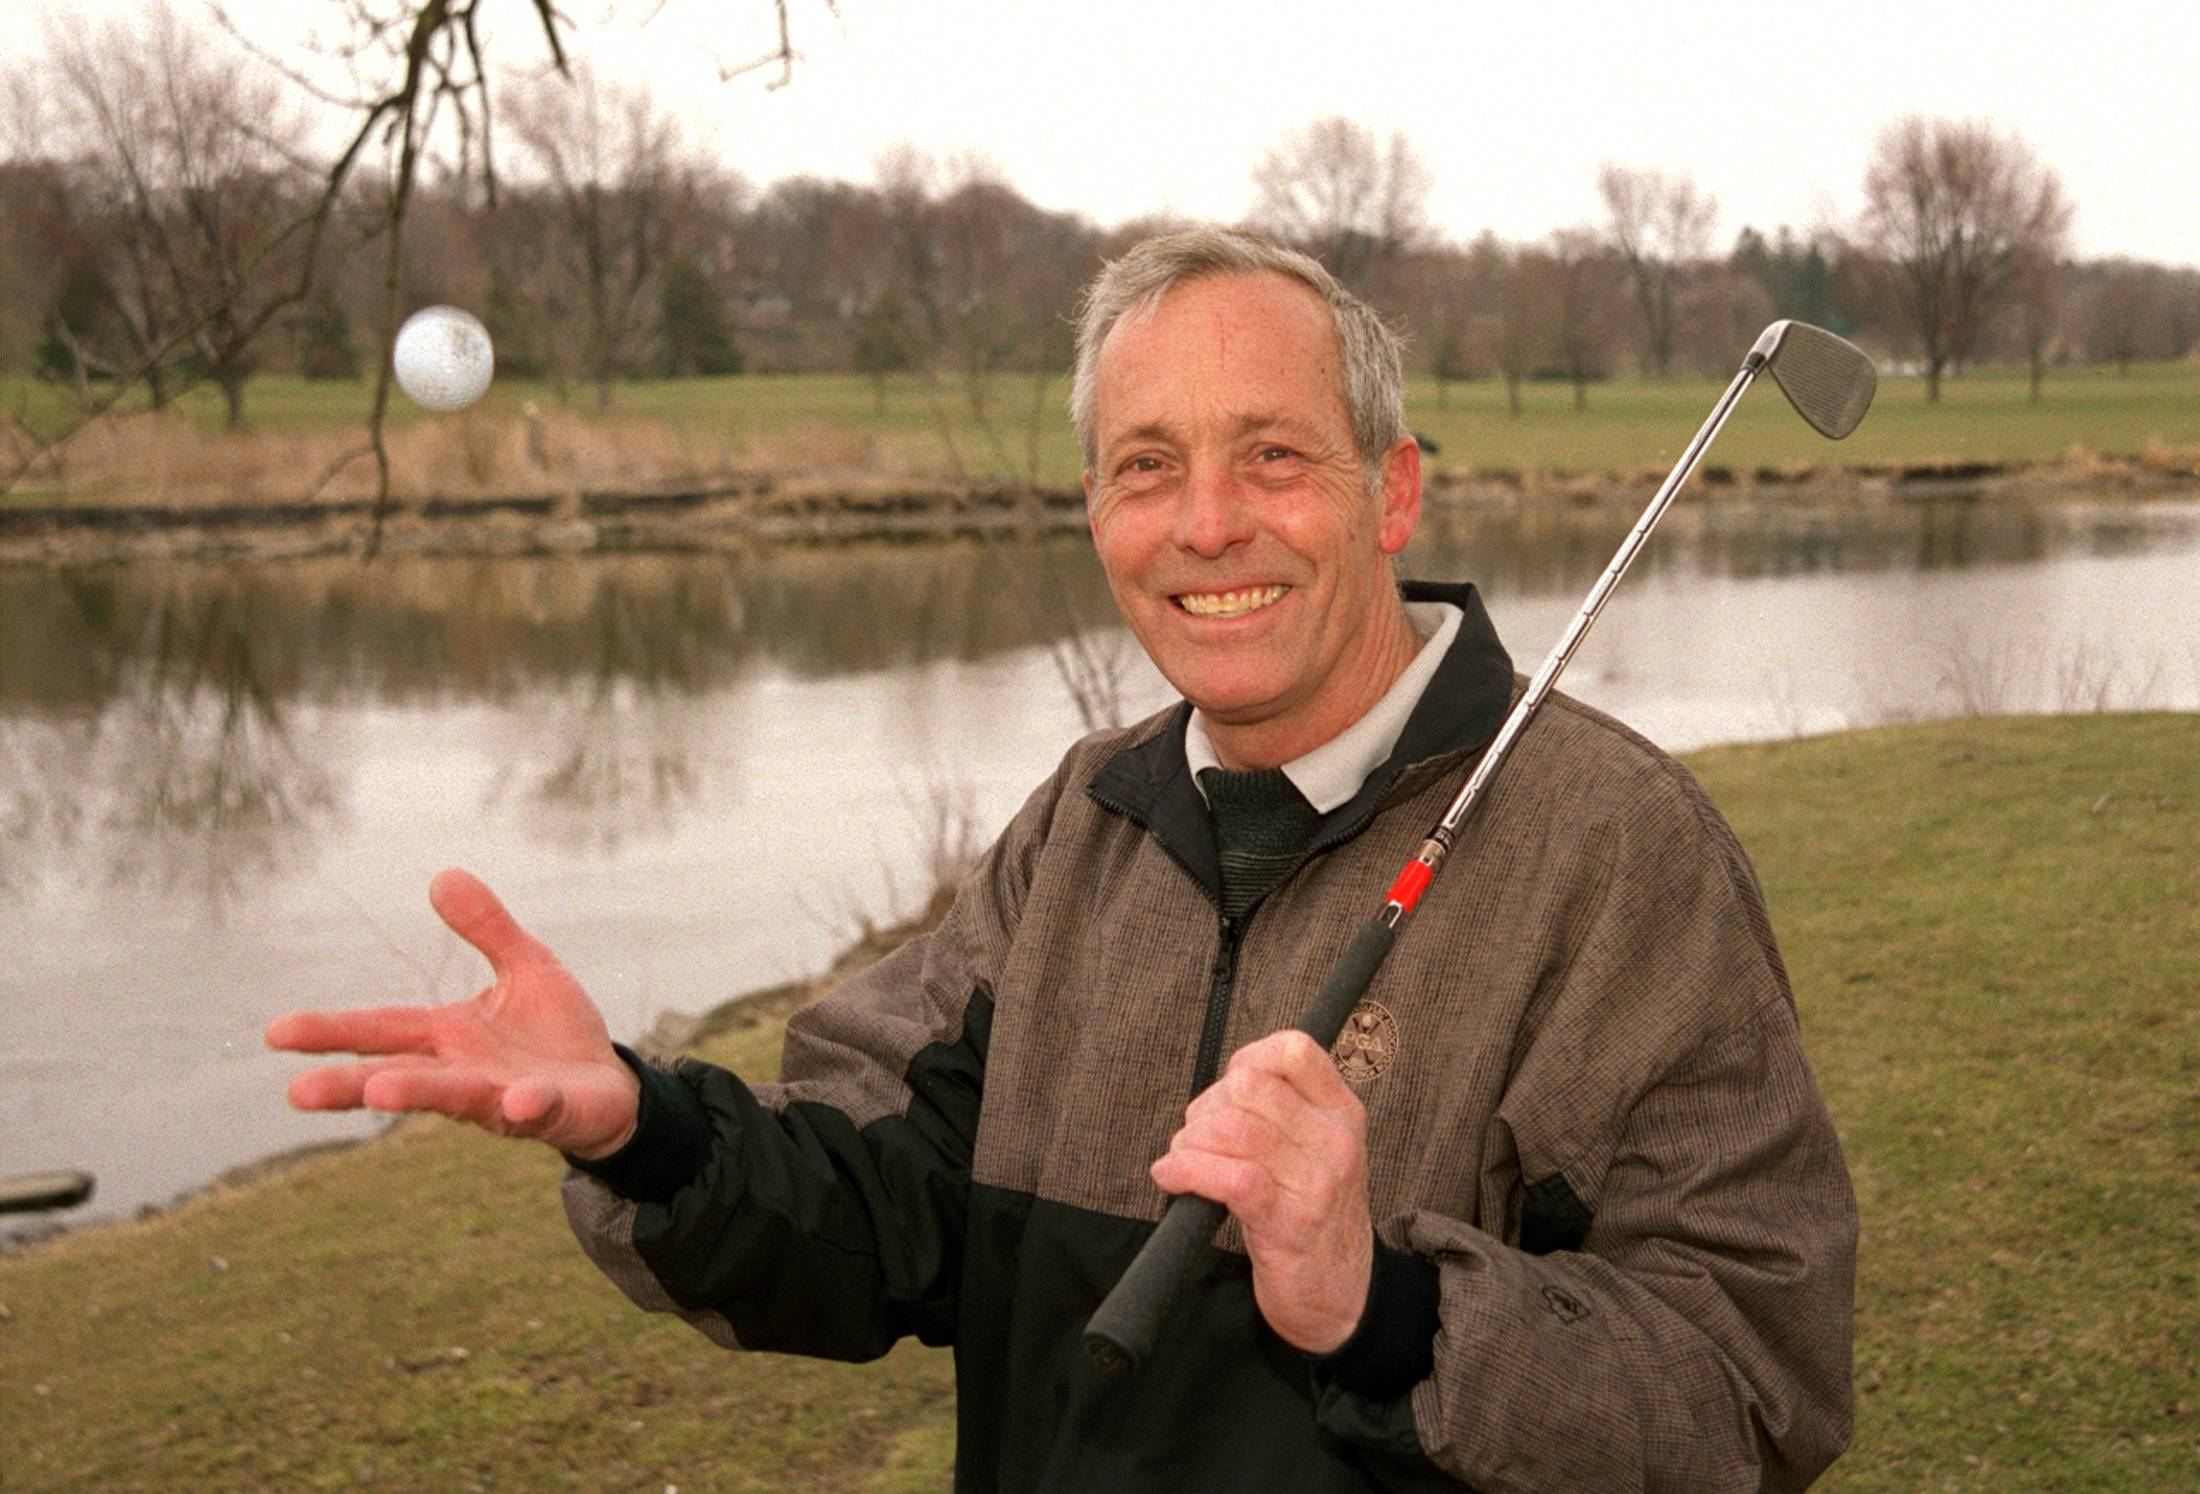 Jim Wheeler marked 24 years at Pottawatomie Golf Course in this photo taken at the 3rd hole.